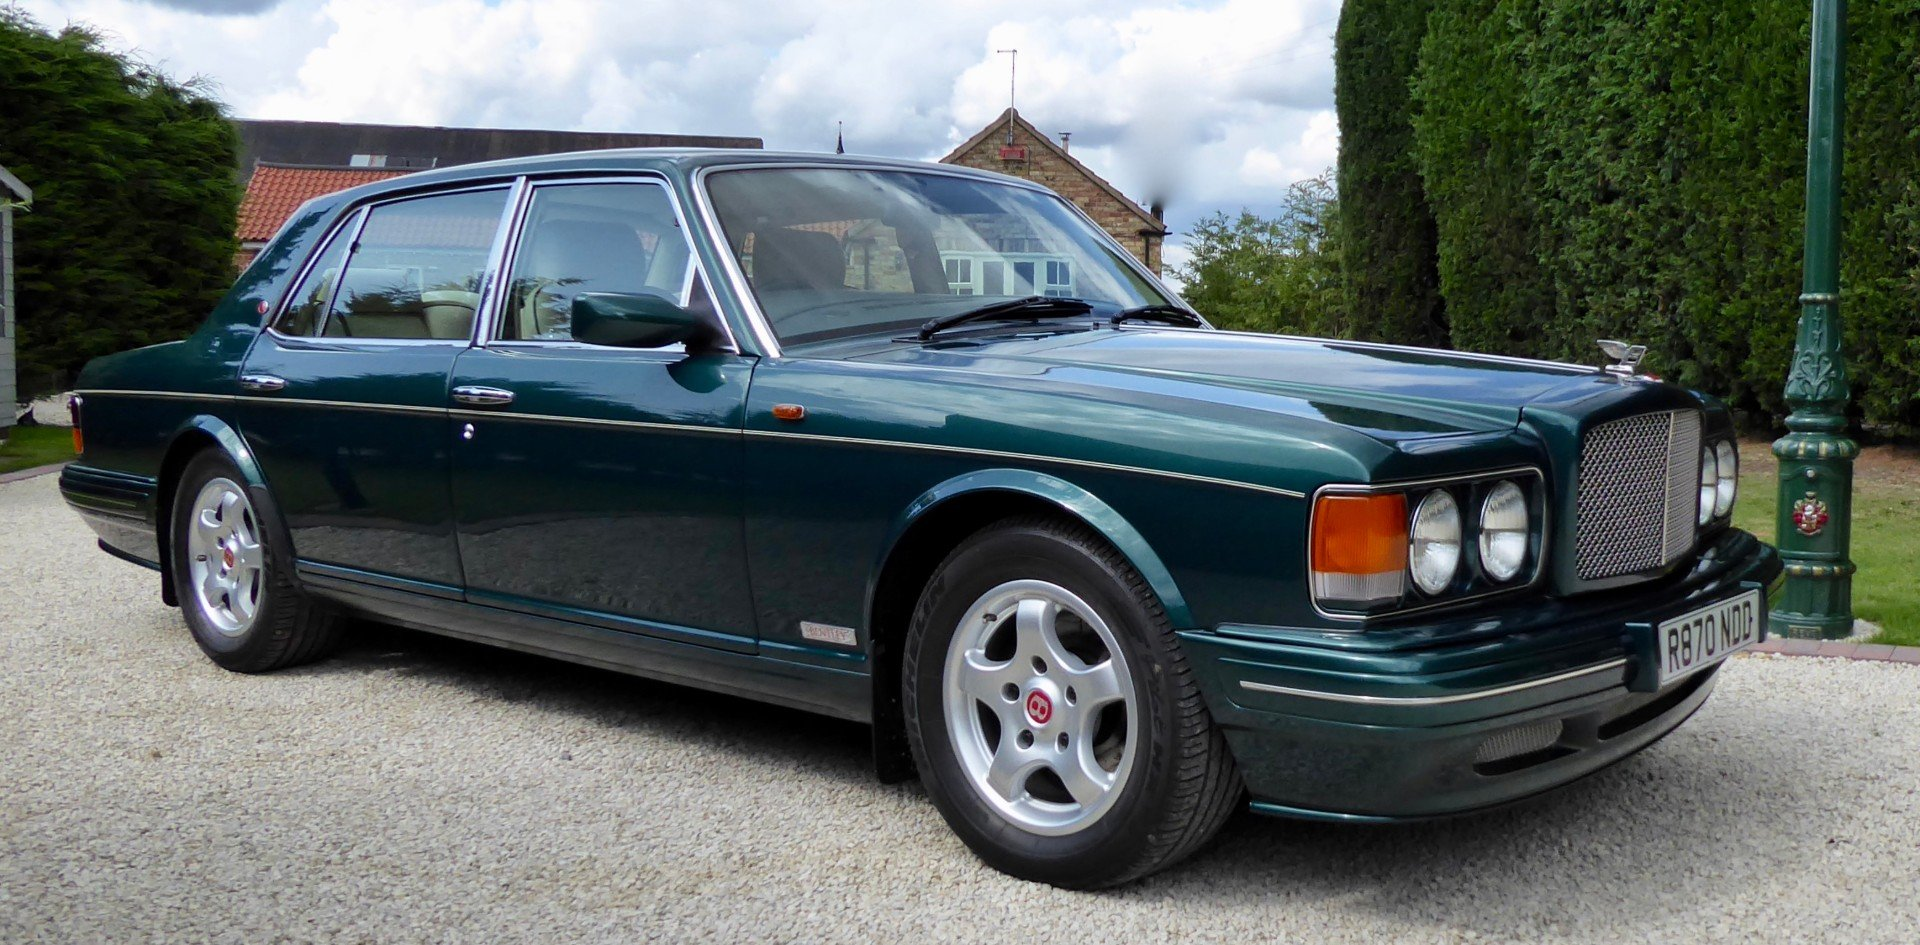 1997 Bentley Turbo RT   ( 28,700 miles ) For Sale (picture 1 of 6)